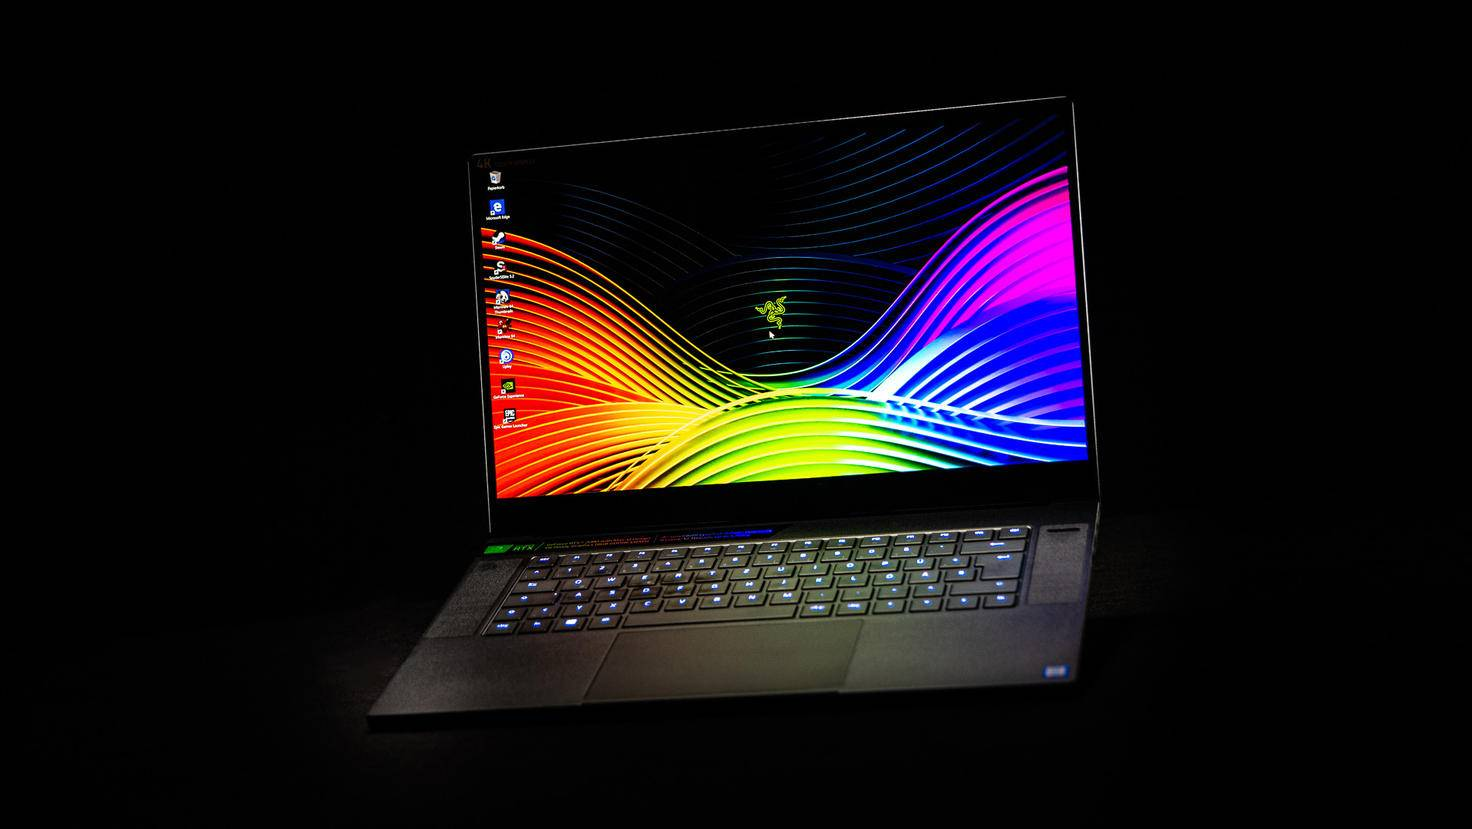 razer-blade-15-profi-advanced-2019-7